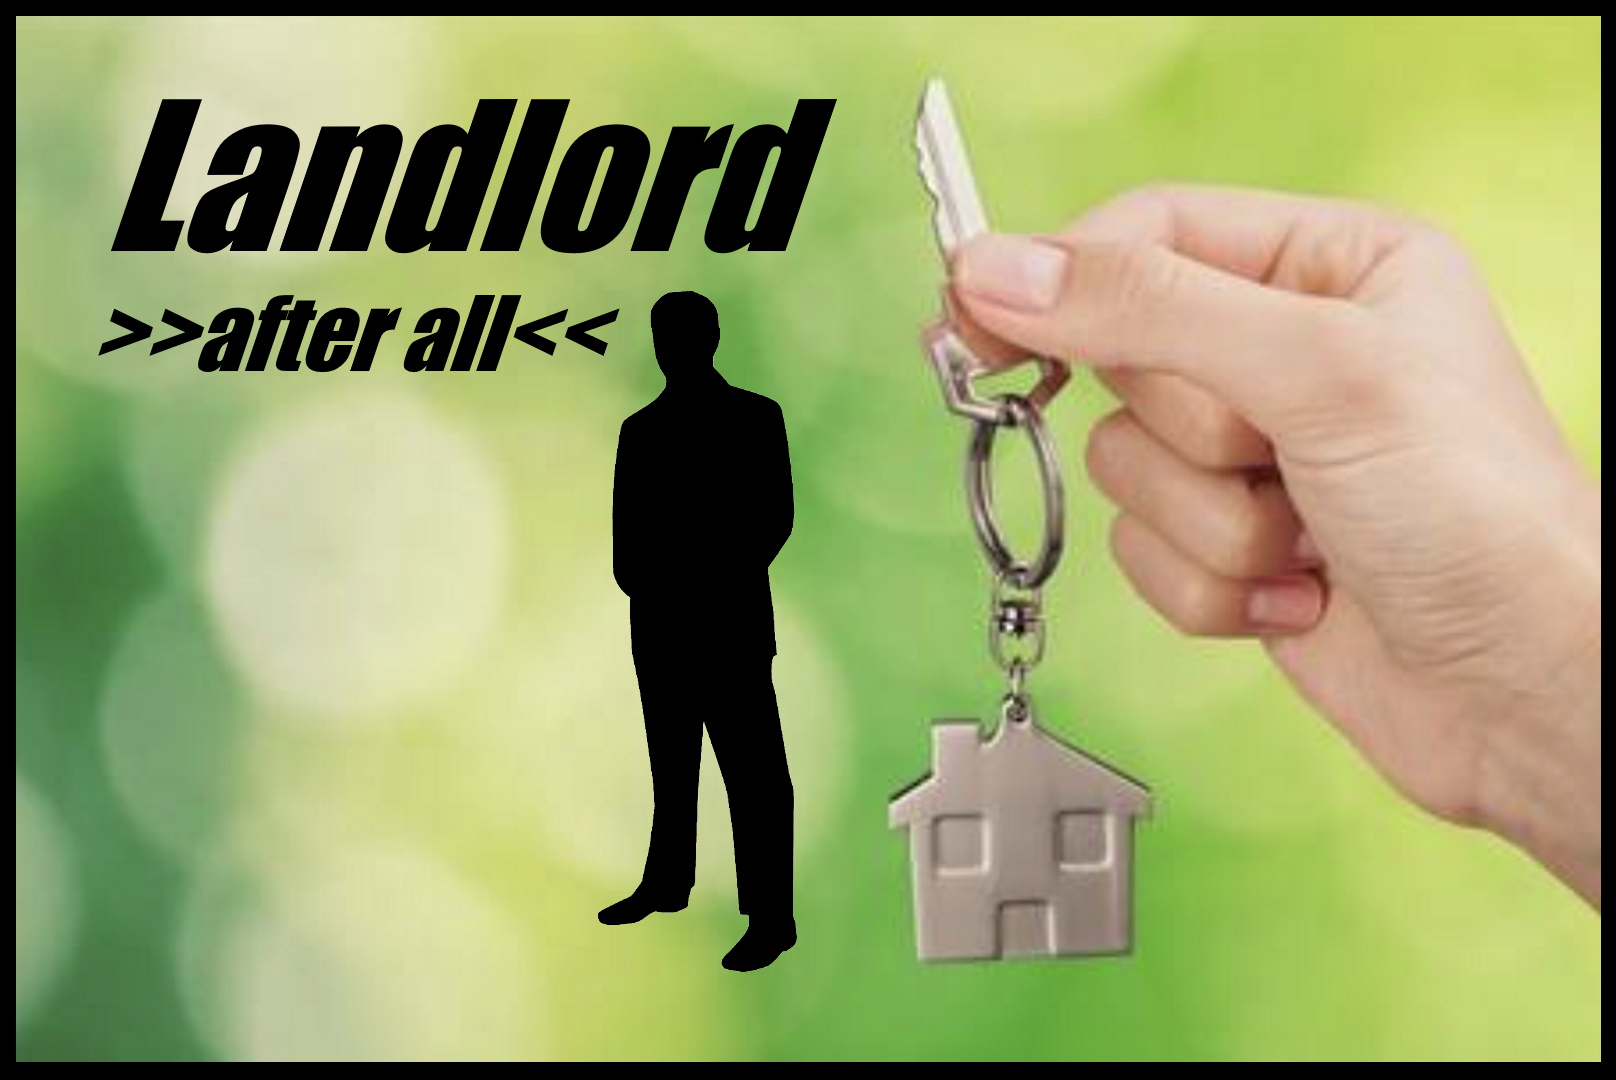 Landlord after all poster